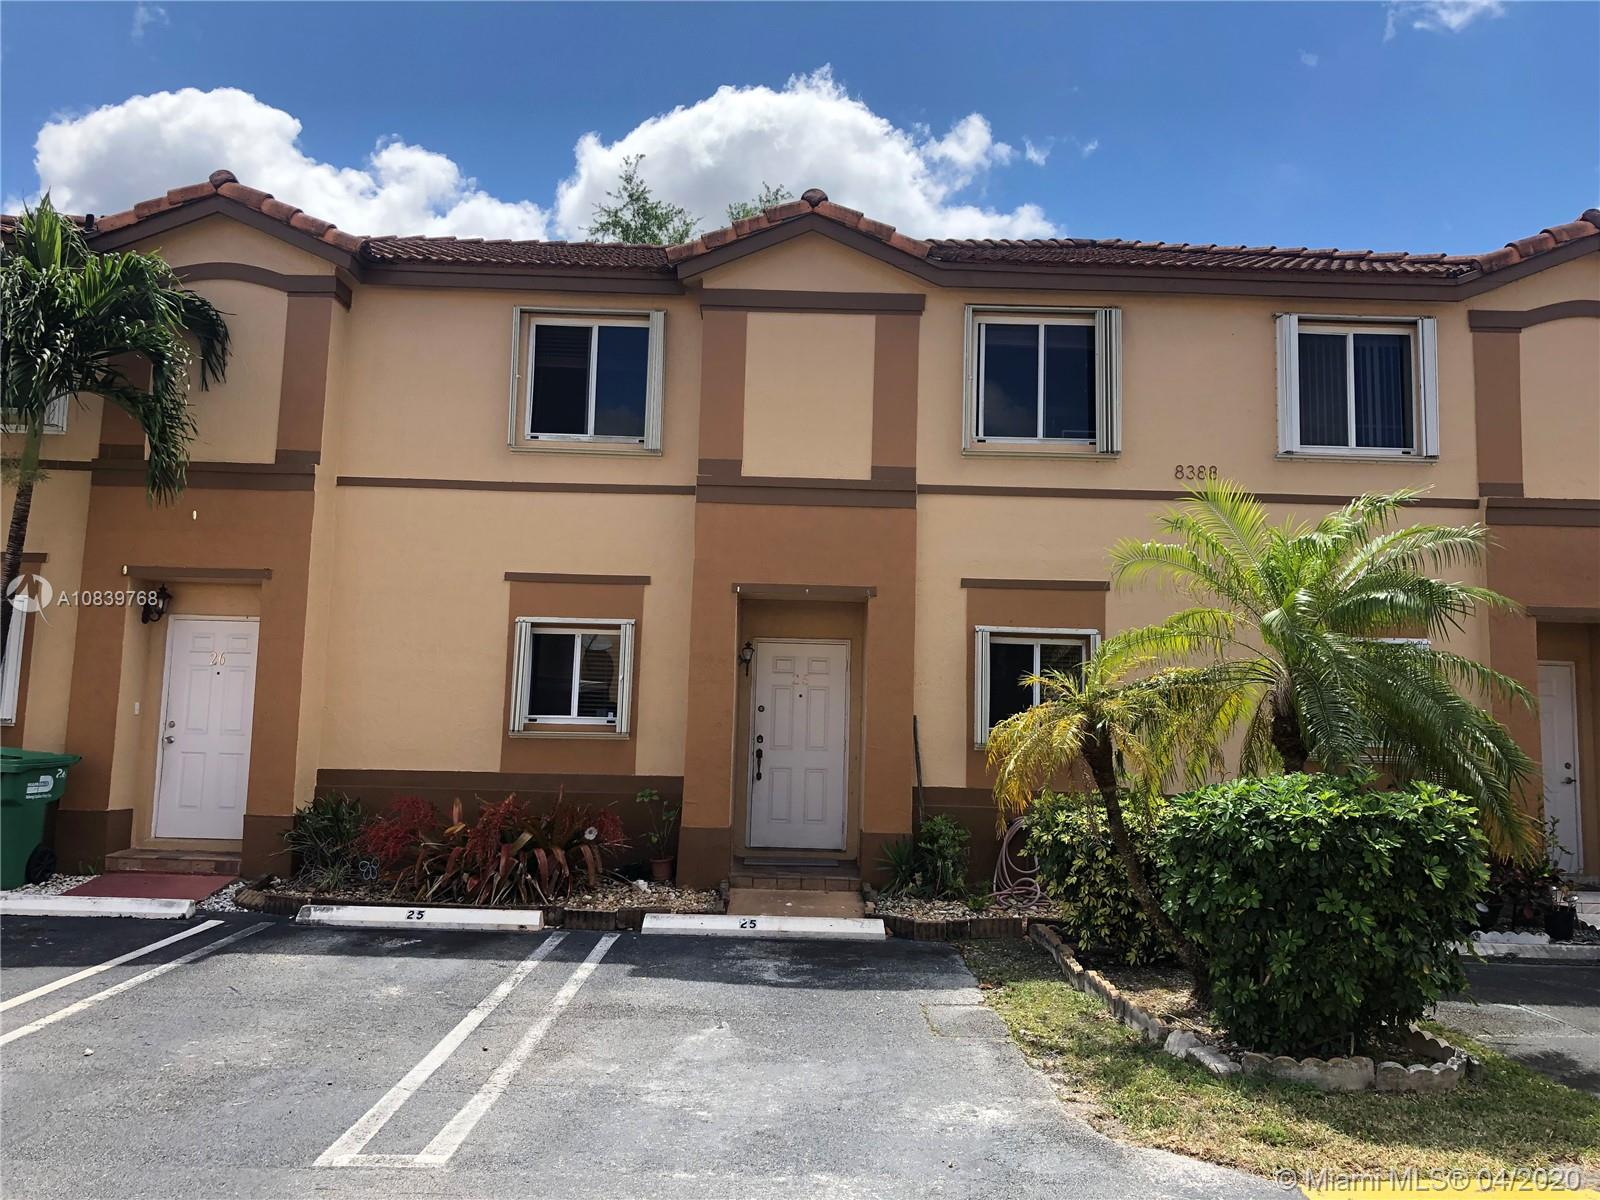 8388 SW 152nd Ave #25-5 For Sale A10839768, FL